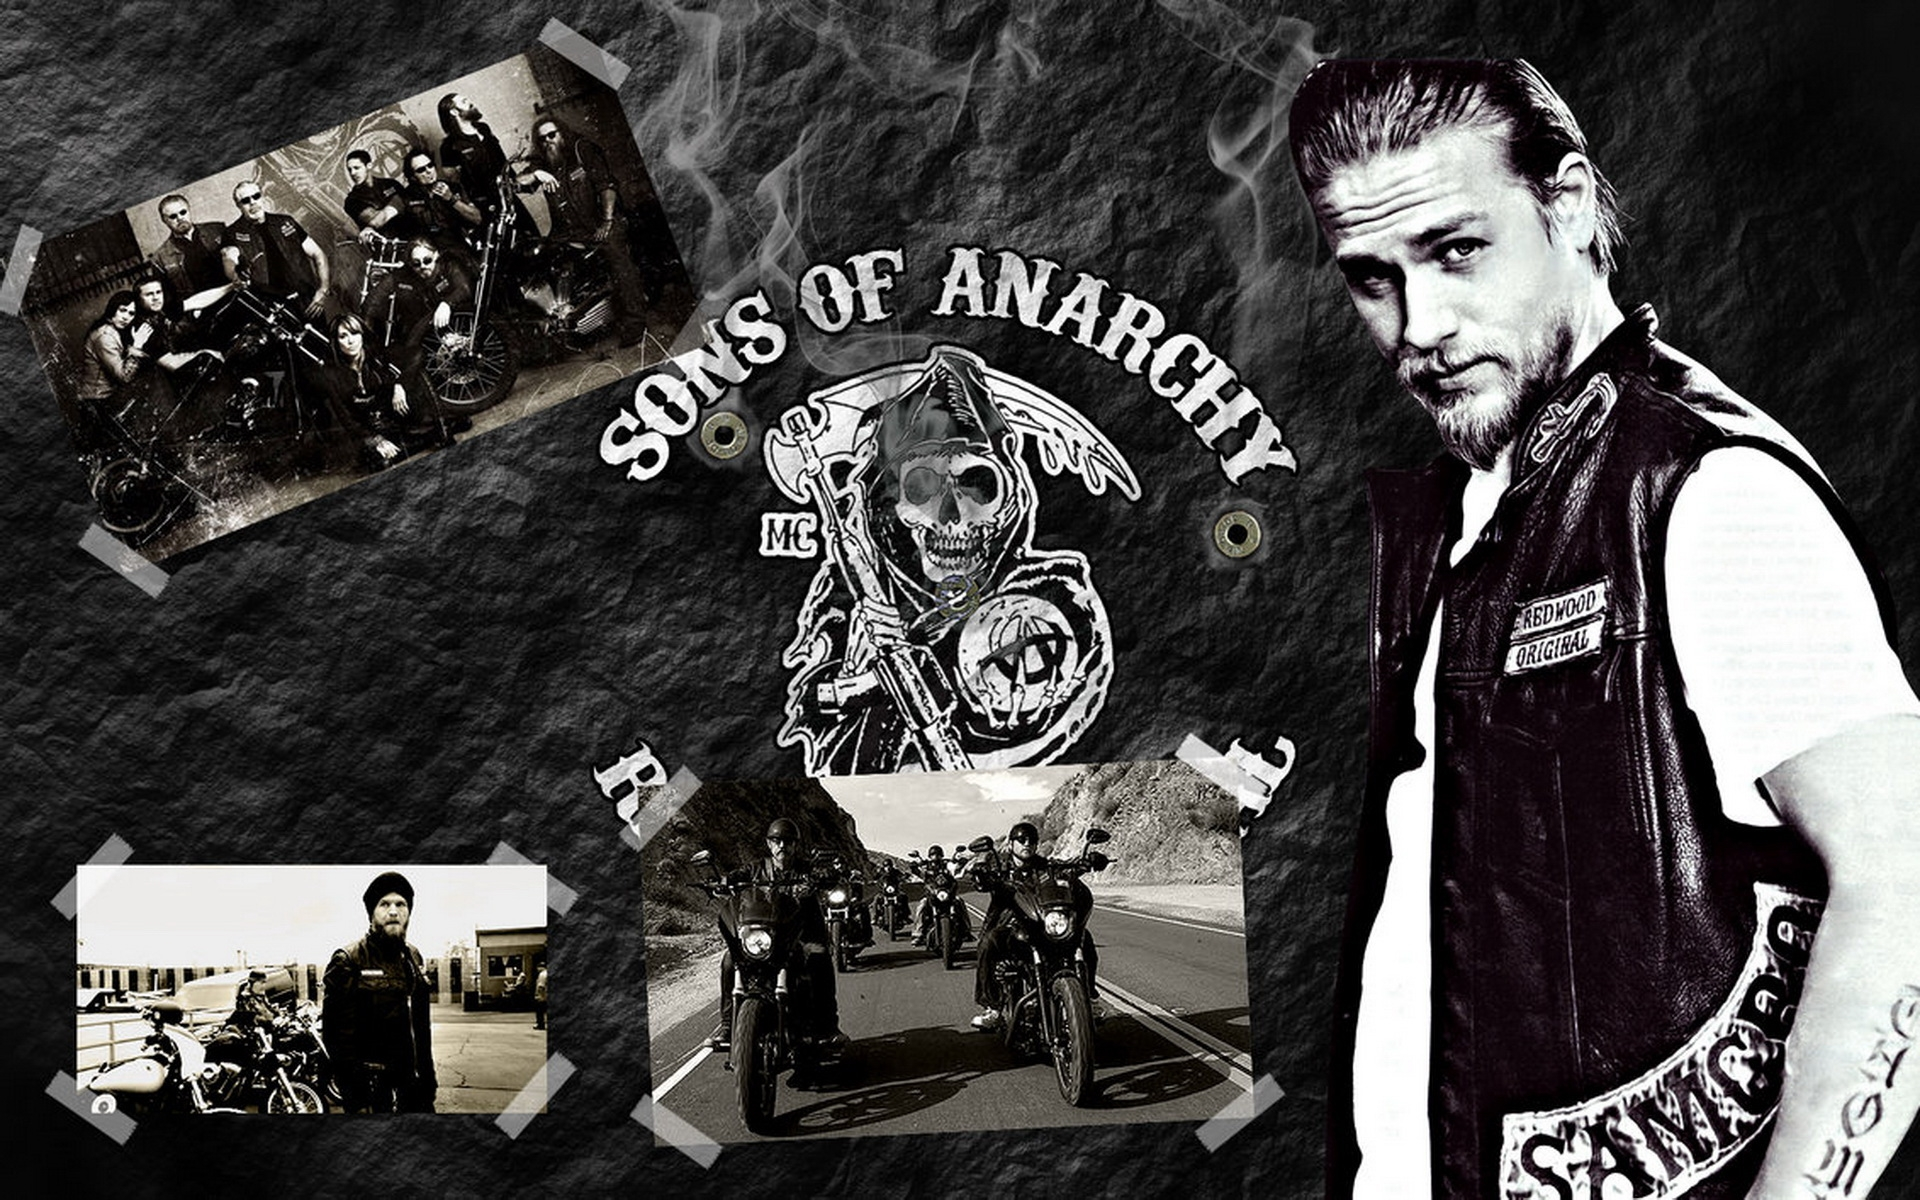 Sons-of-anarchy-season5-characters